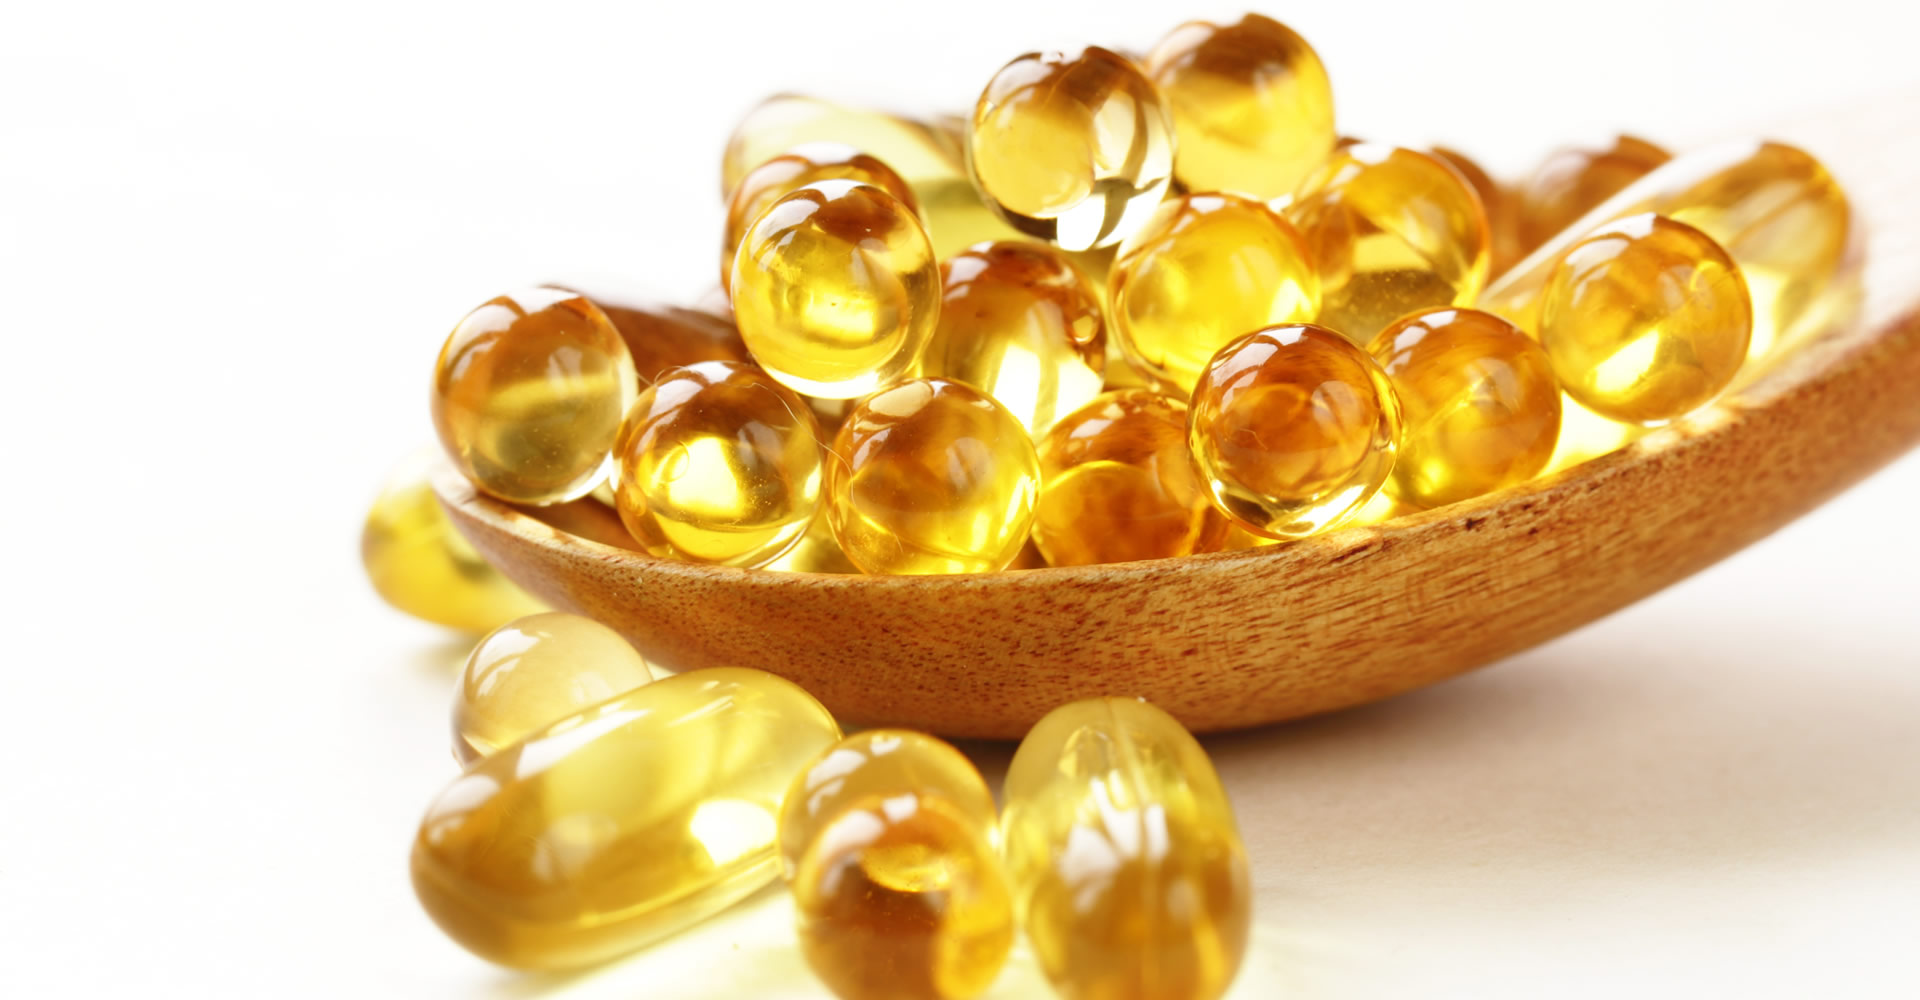 The importance of Omega 3 fatty acids in the diet